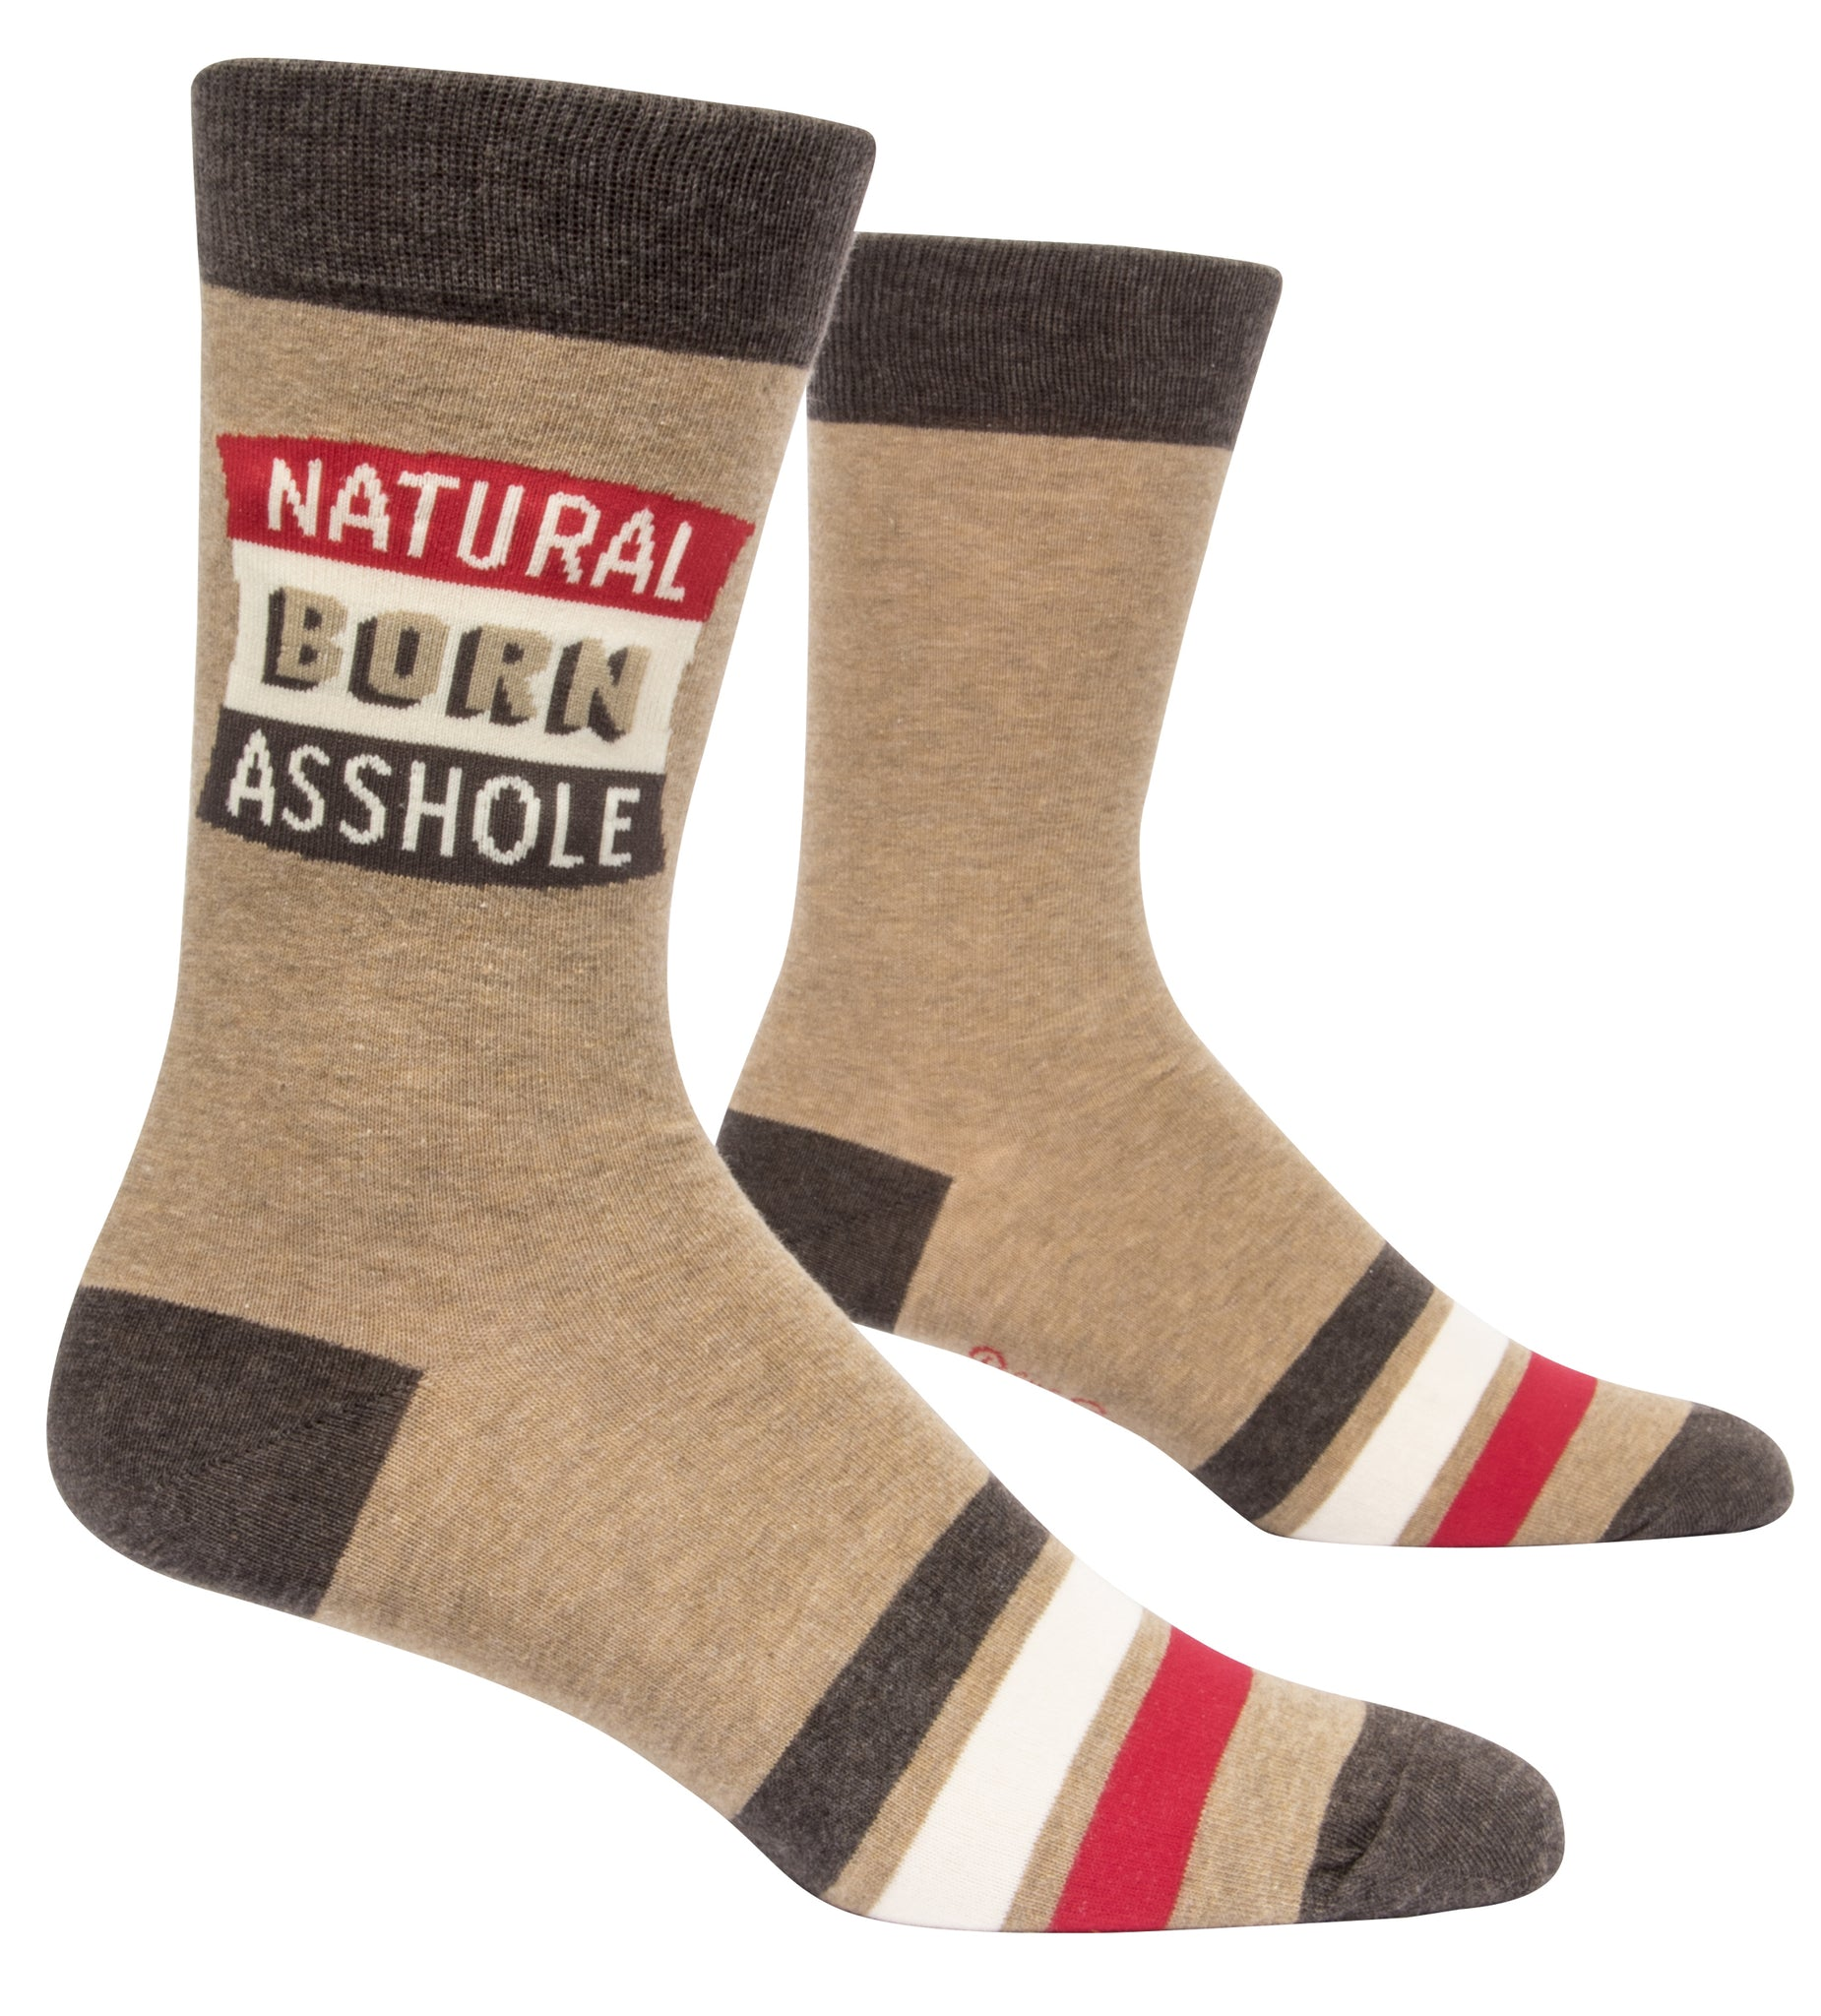 Natural Born Asshole Men's Socks